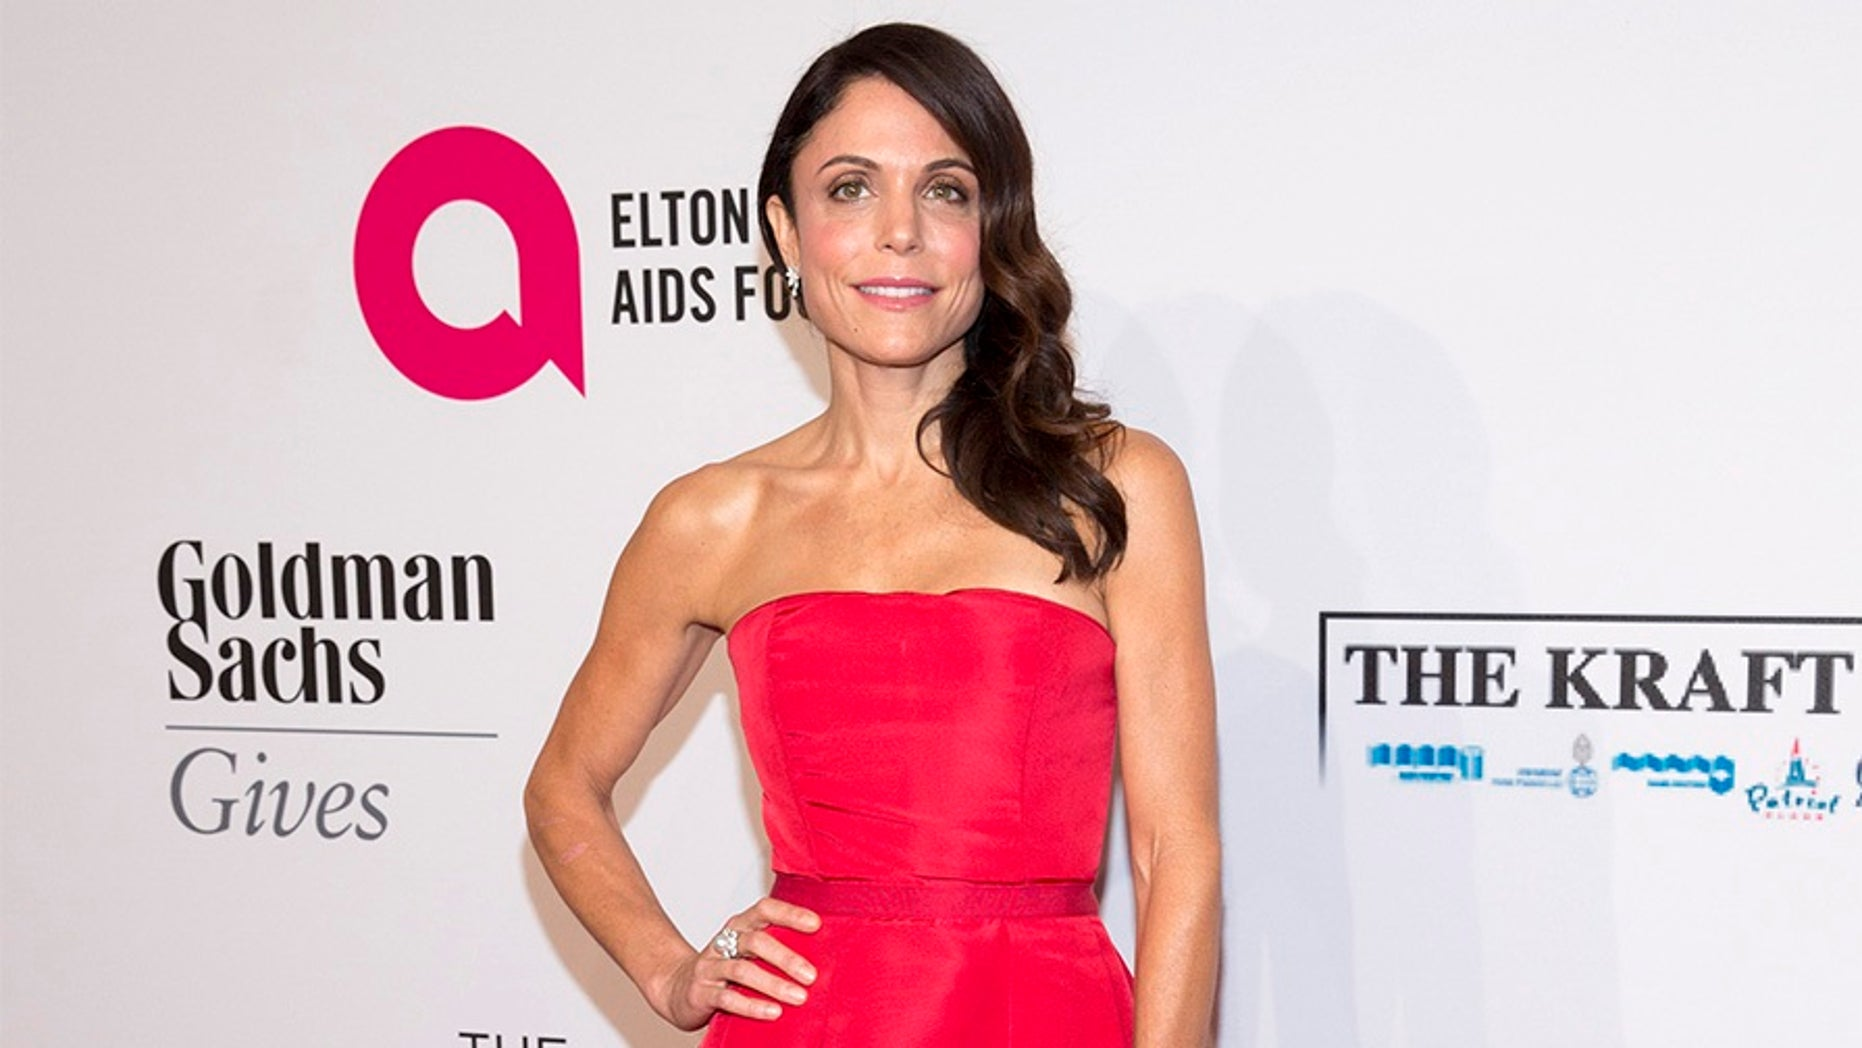 Bethenny Frankel said she was thinking about launching her own dating app.